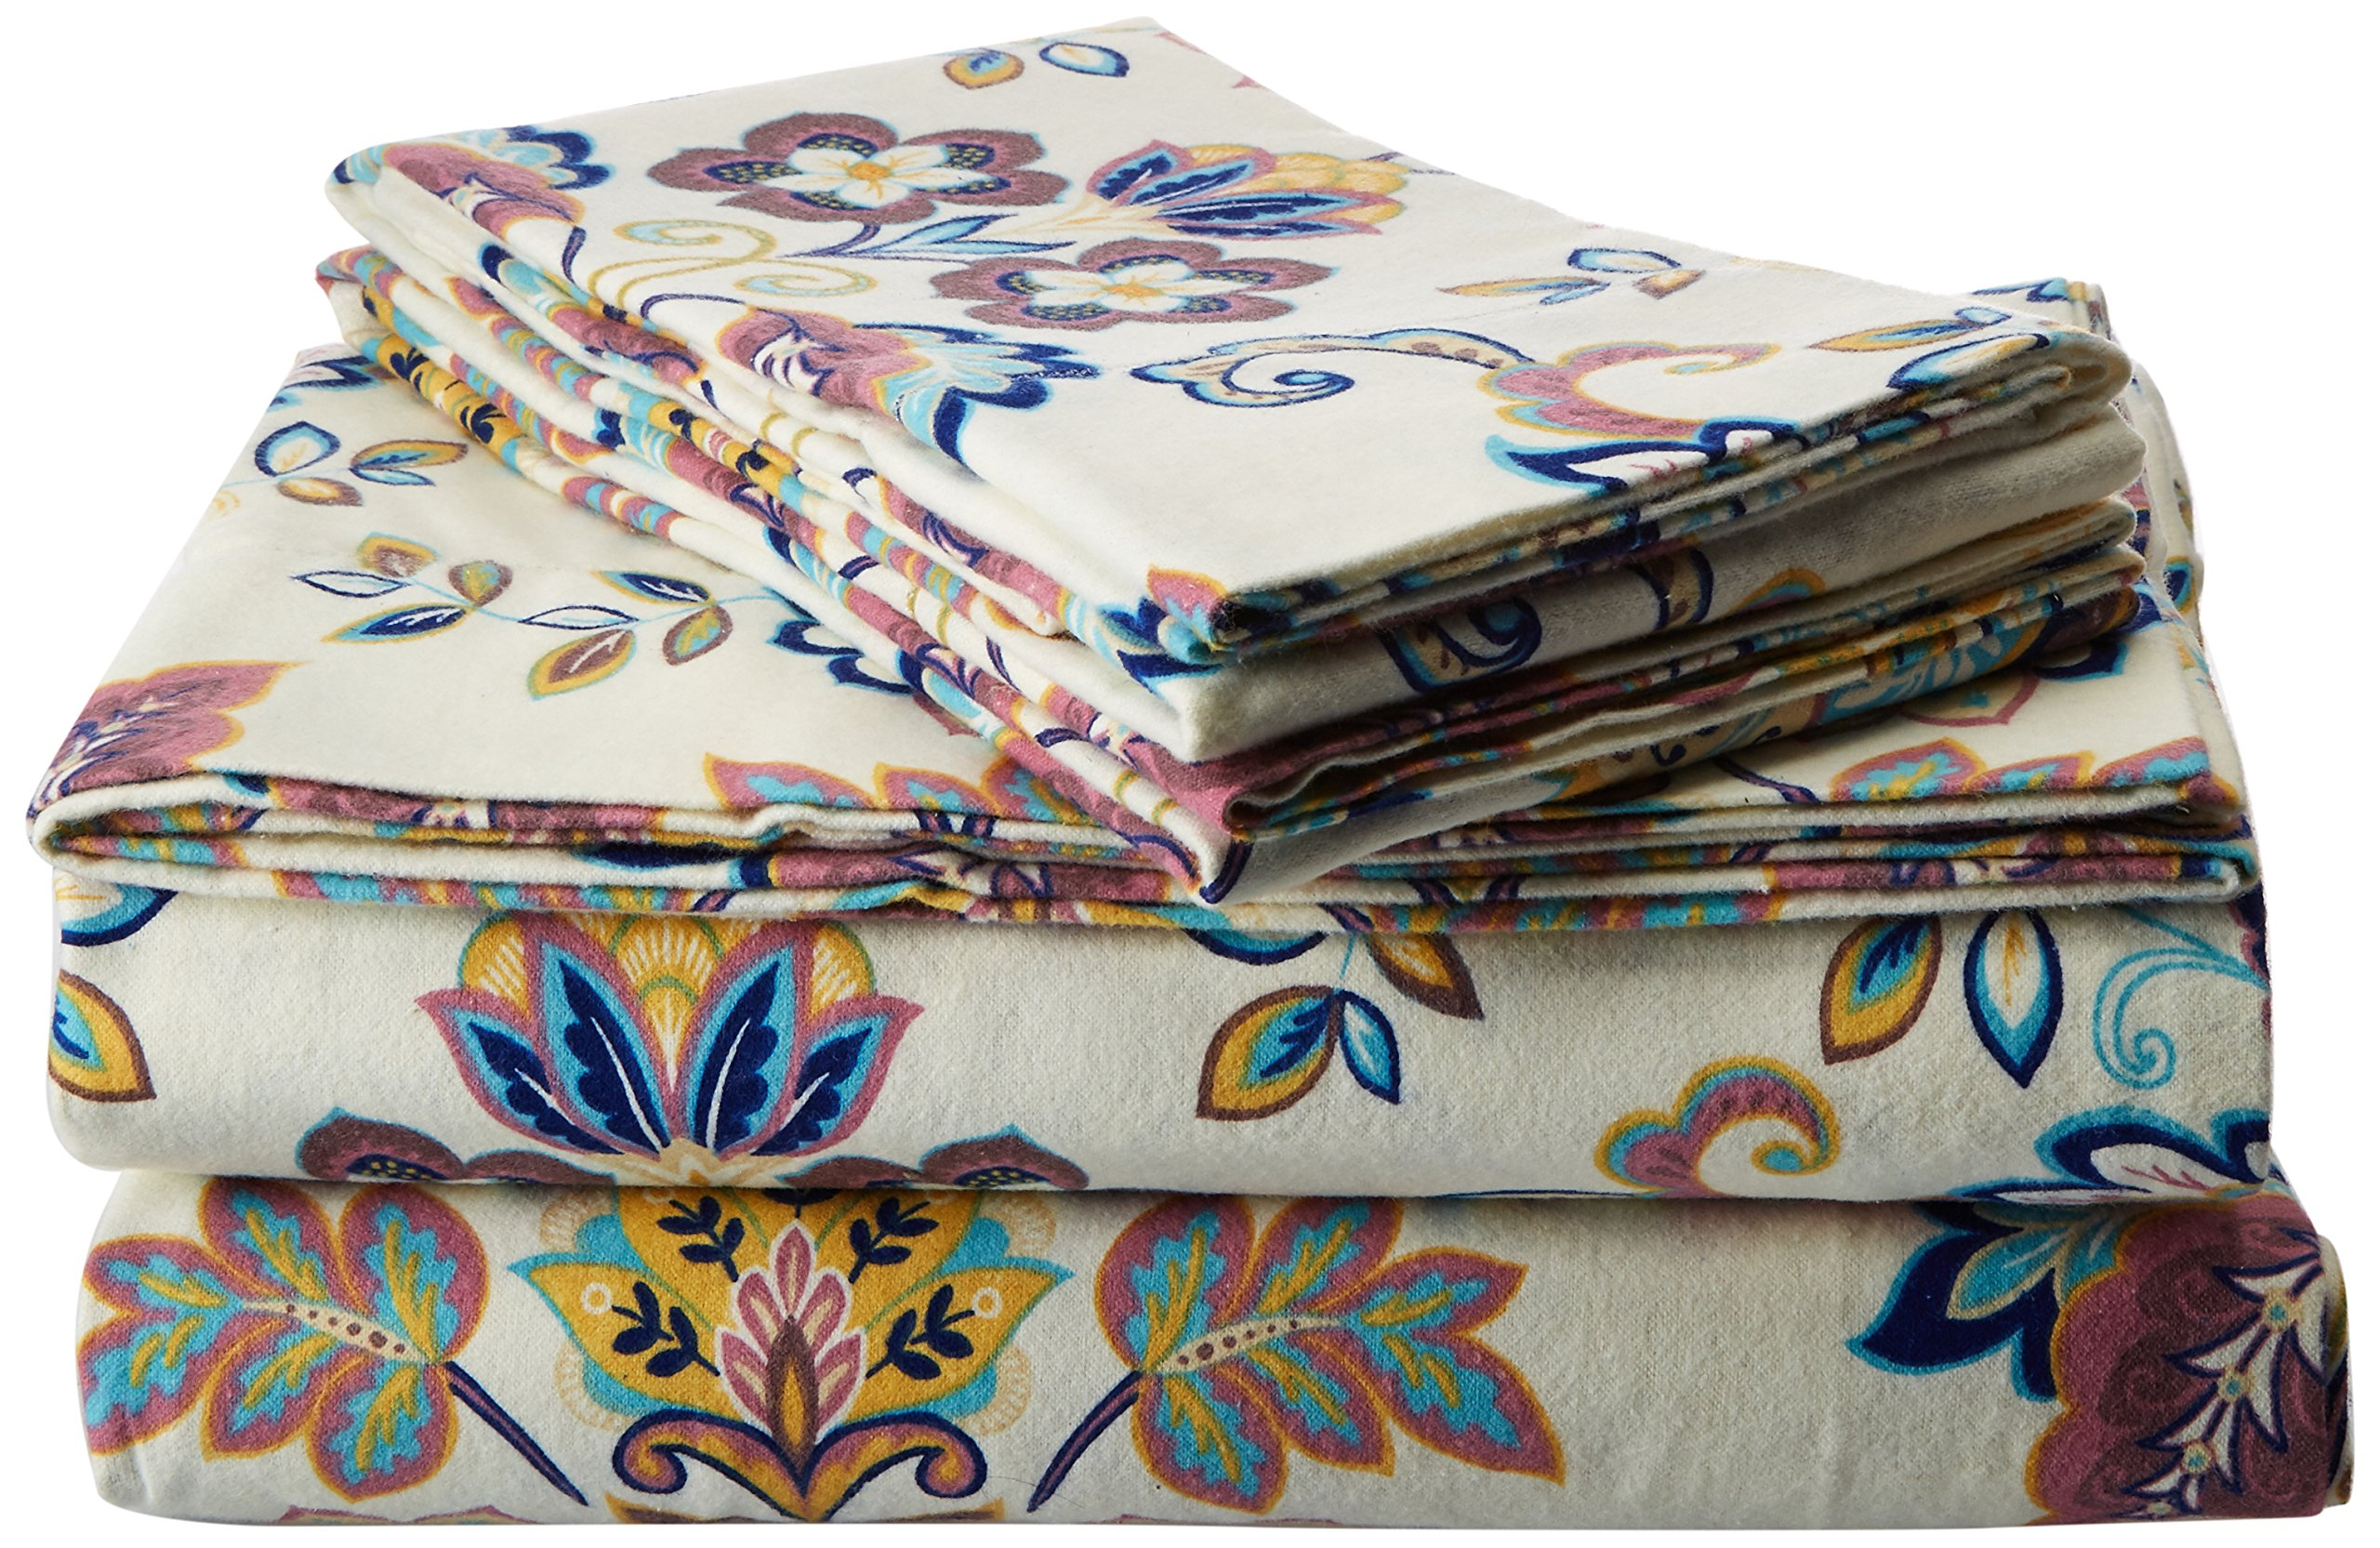 Tribeca Living 200-GSM Abstract Paisley Printed Deep Pocket Flannel Sheet Set, King, Multicolored - This extra deep pocket sheet set includes one flat sheet, one fitted sheet and two pillow cases 100% cotton; 200 gsm weight Brushed multiple times on both sides for softest finish and feel - sheet-sets, bedroom-sheets-comforters, bedroom - 91rVQI8bY5L -